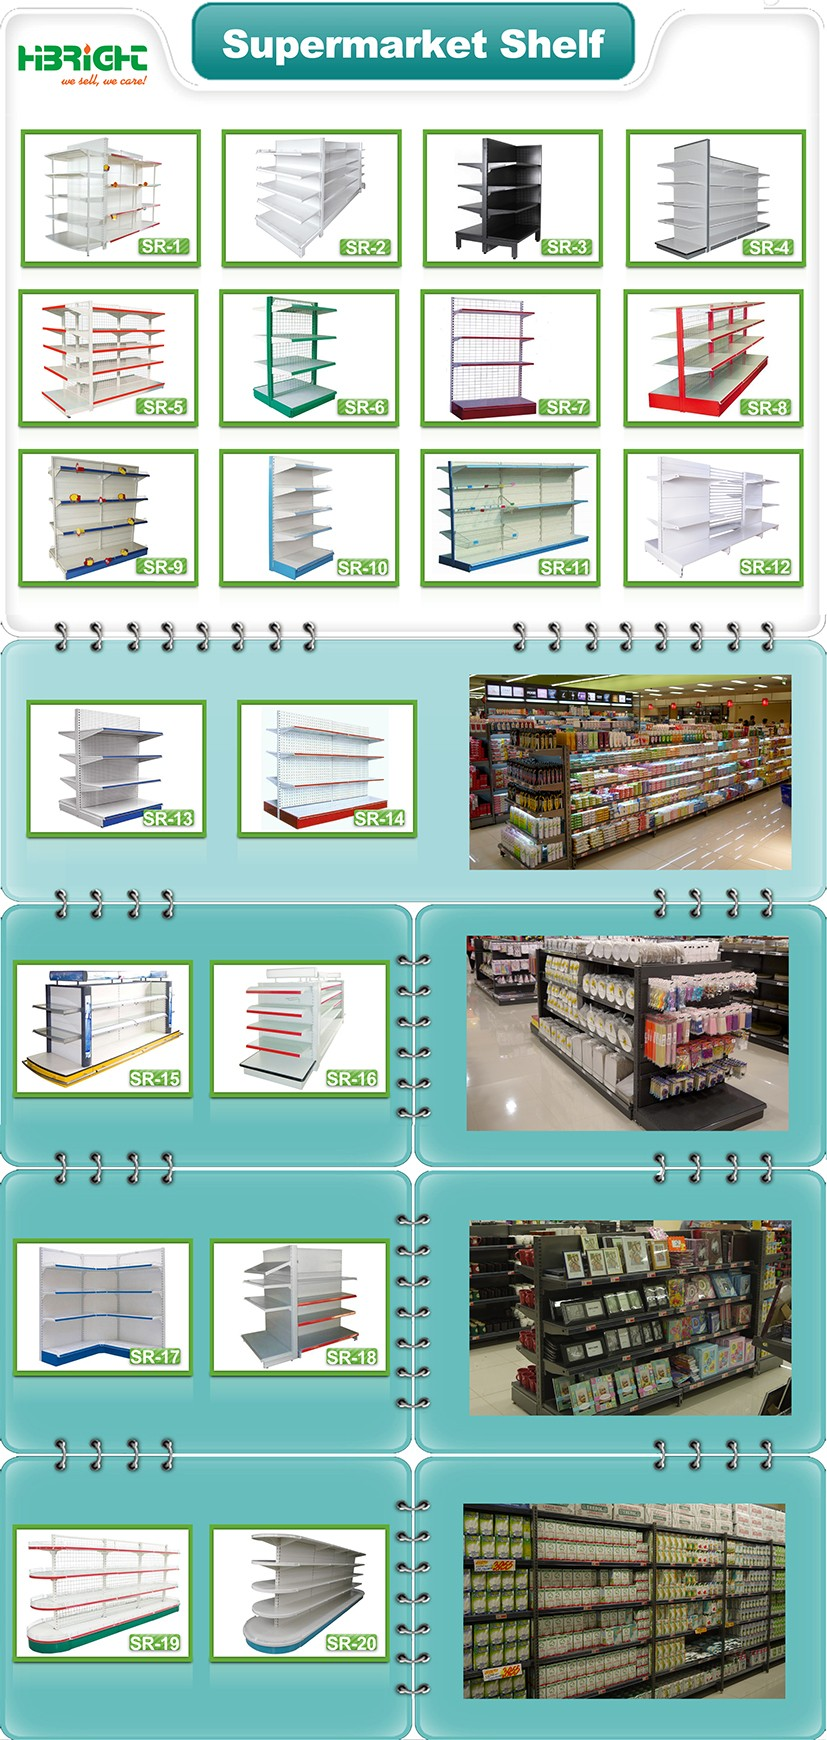 supermarket shelf and checkout counter equipment